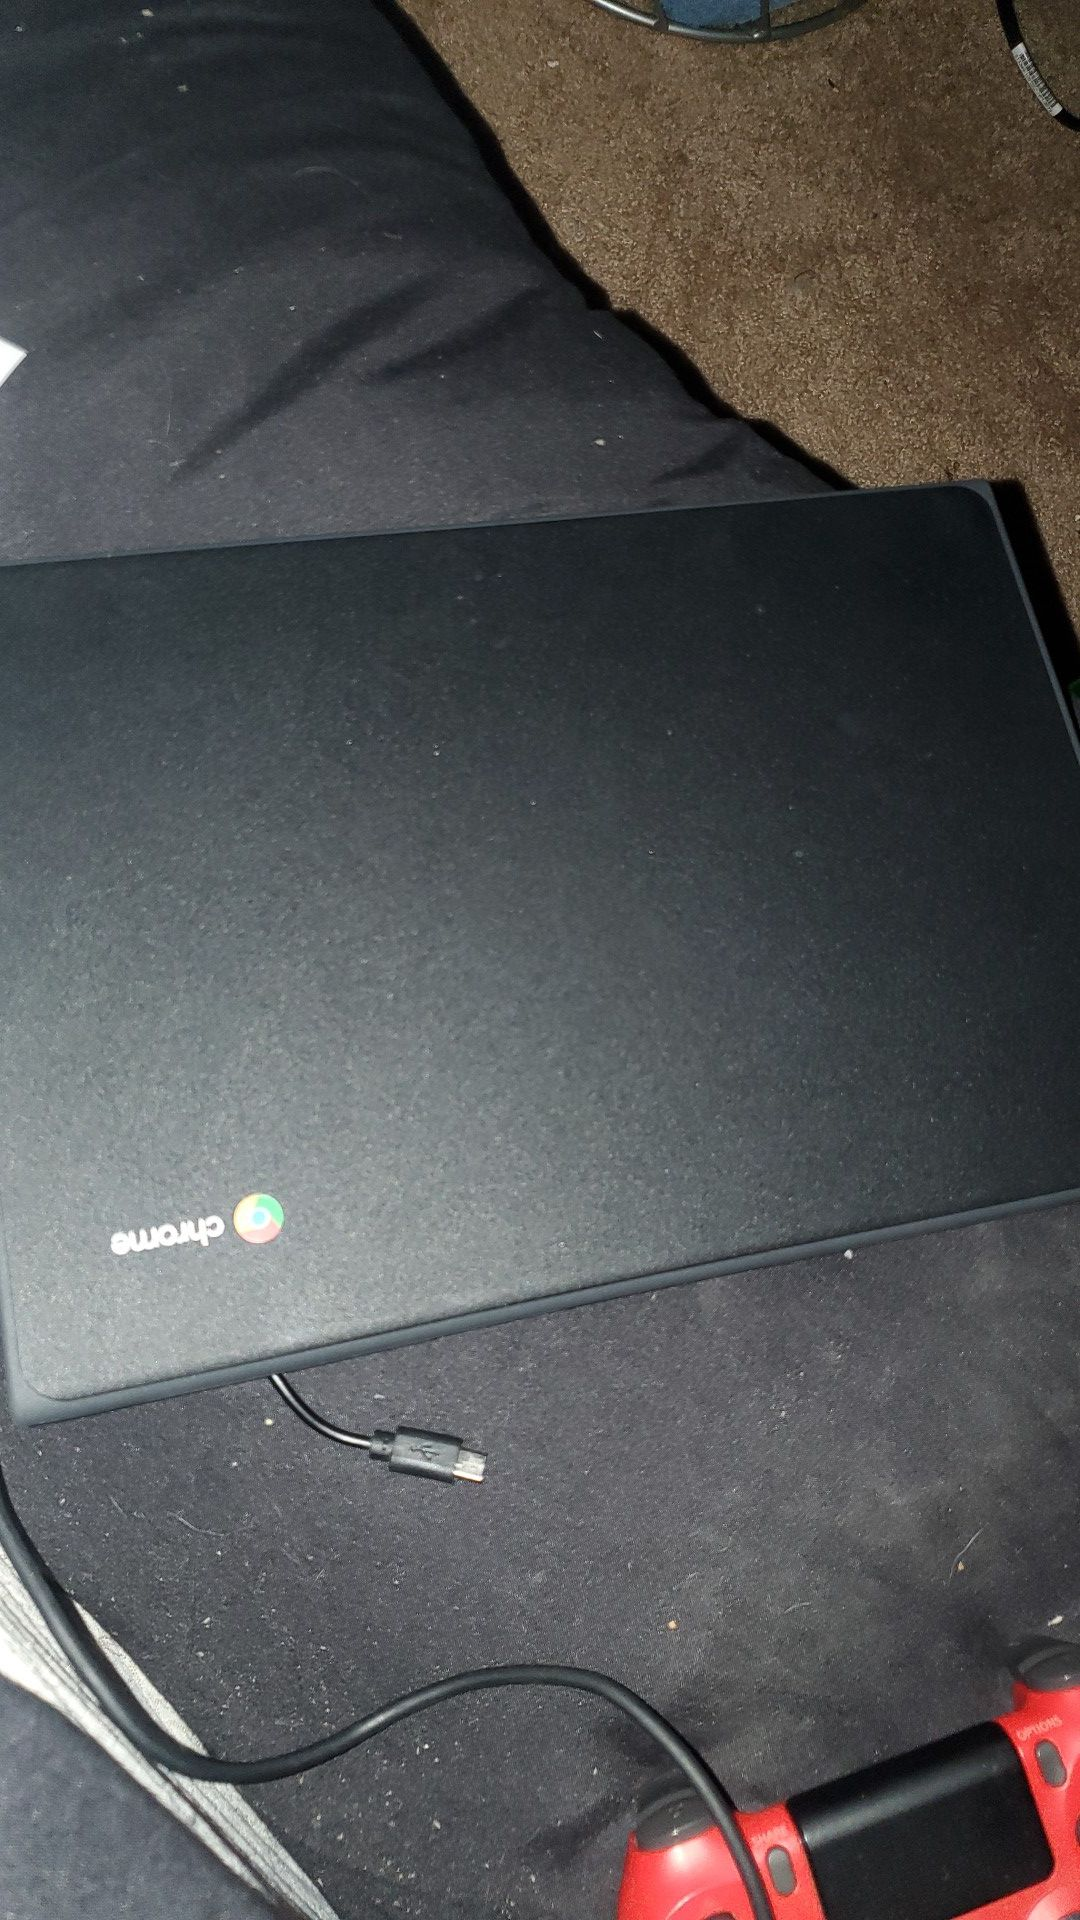 Chromebook brand new